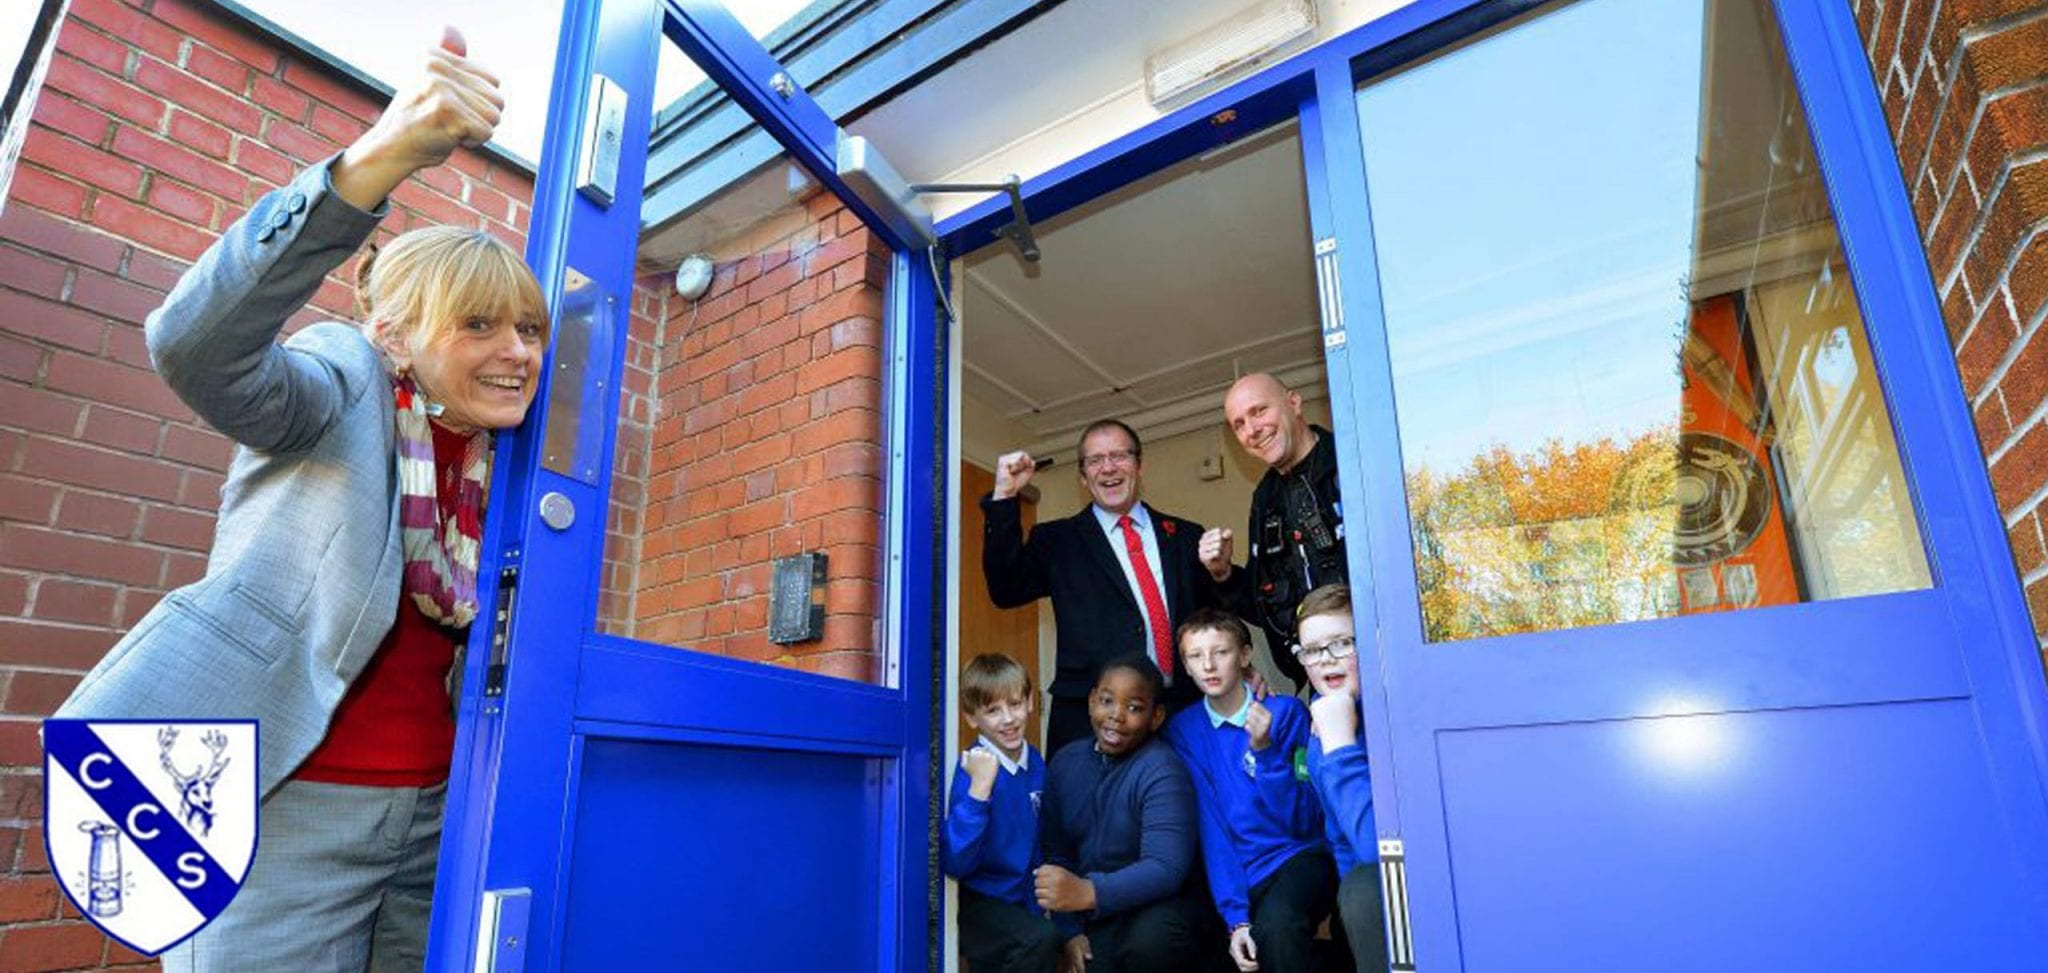 Brett Barratt, a security guard, 4 students and the head teacher of Chasetown Community school celebrating next to their Warrior 2gg Swing Door & Screen